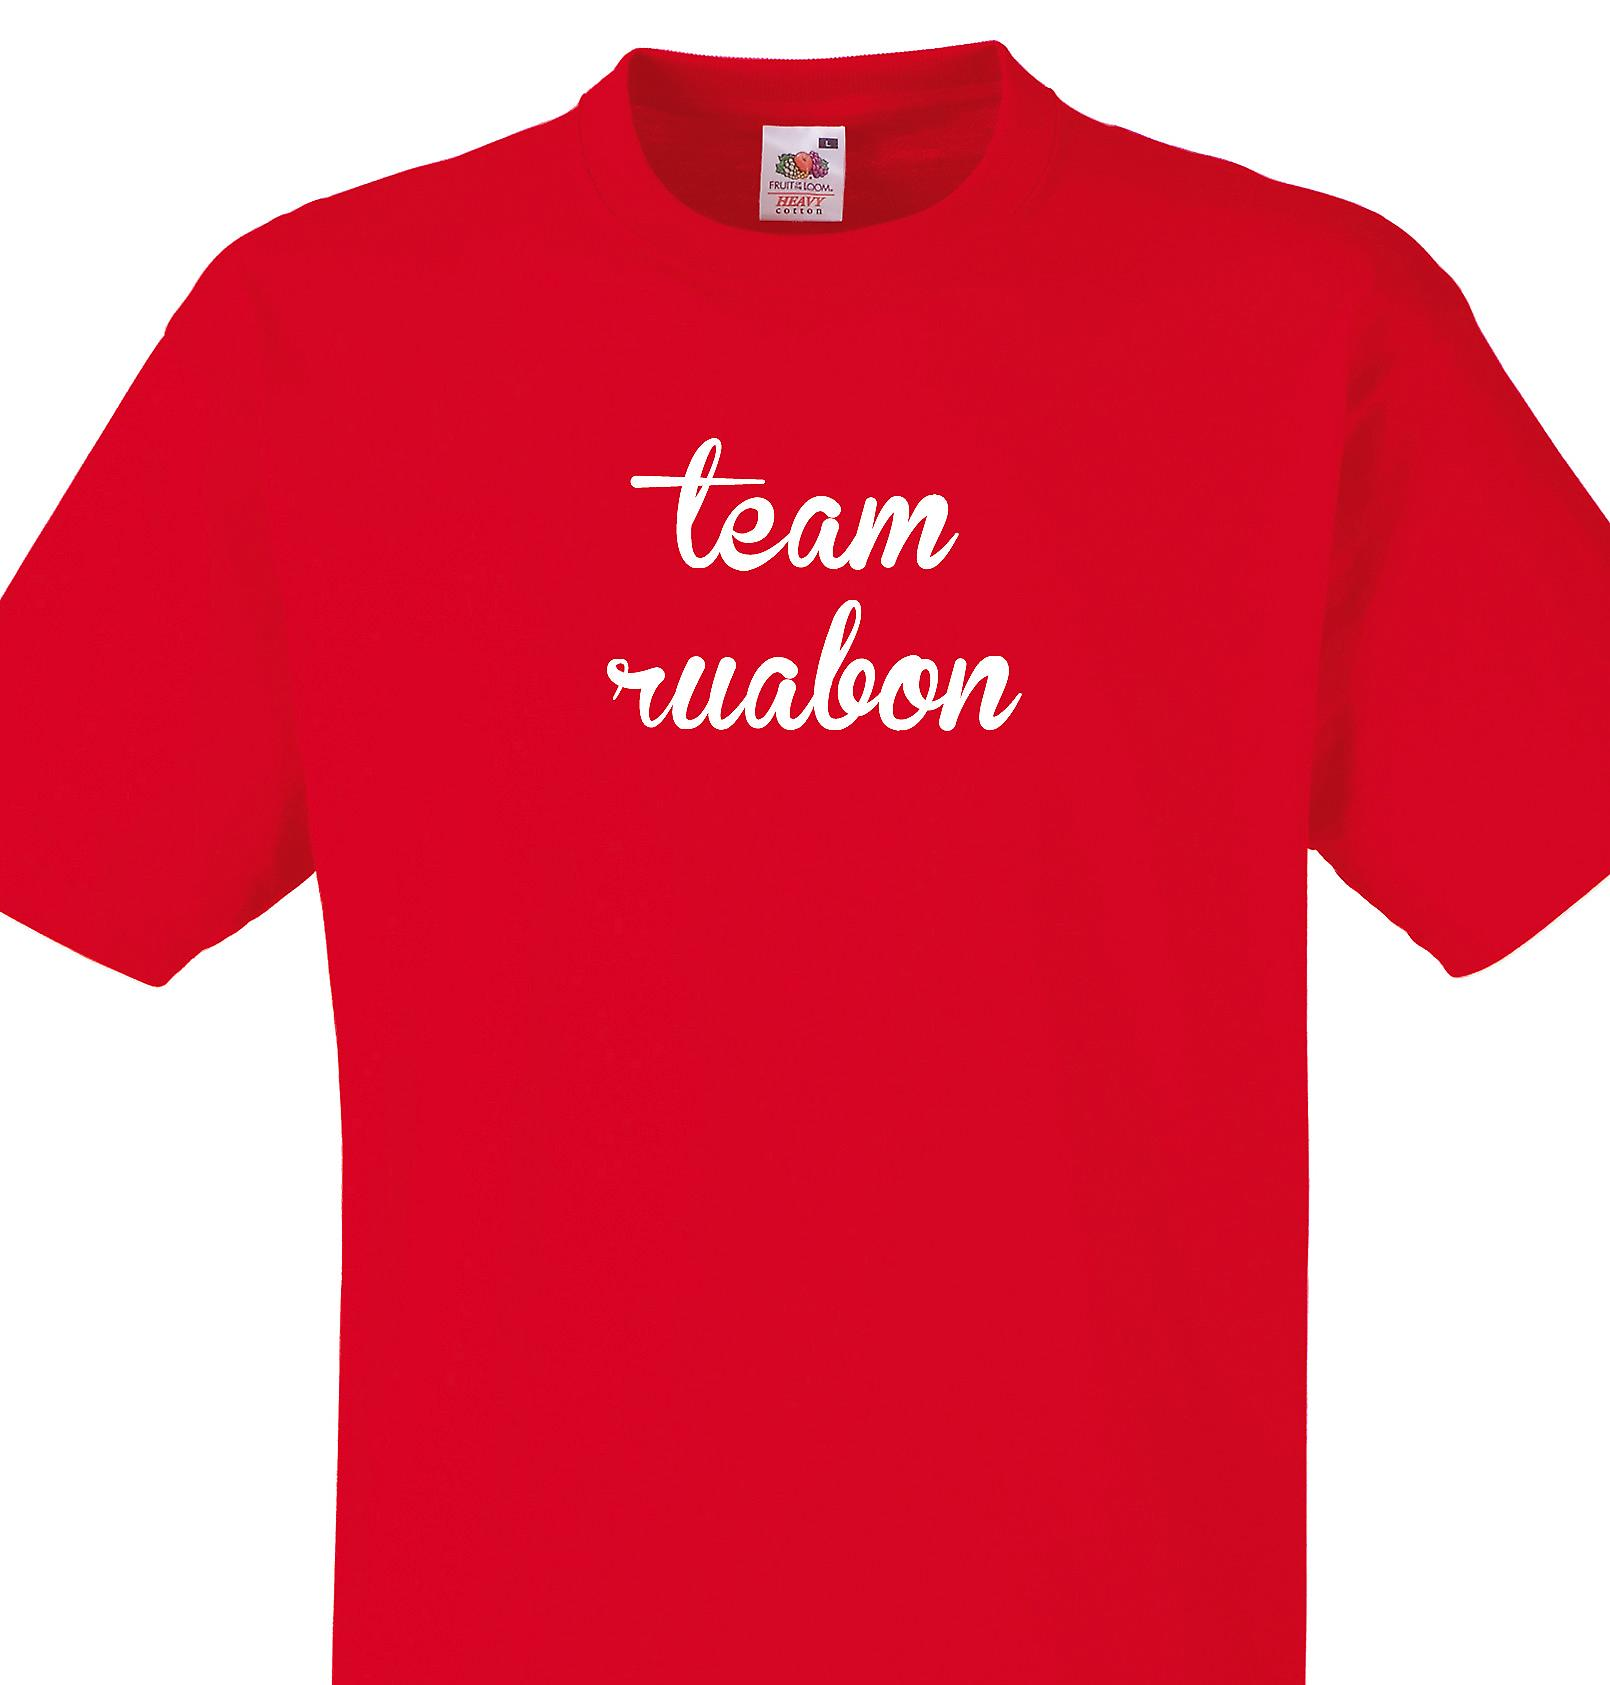 Team Ruabon Red T shirt